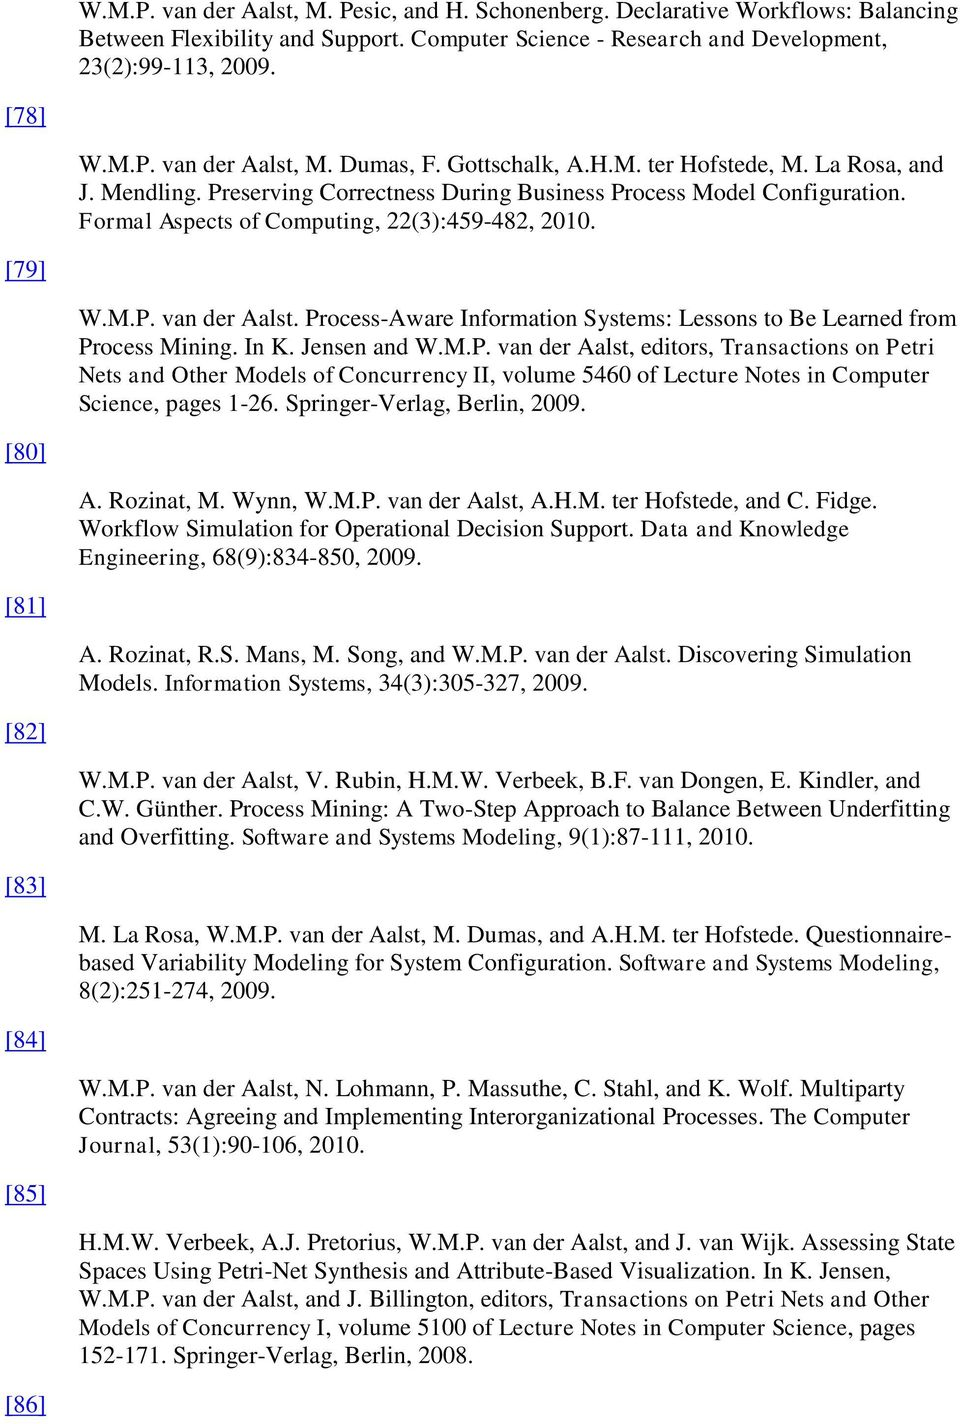 Process-Aware Information Systems: Lessons to Be Learned from Process Mining. In K. Jensen and W.M.P. van der Aalst, editors, Transactions on Petri Nets and Other Models of Concurrency II, volume 5460 of Lecture Notes in Computer Science, pages 1-26.